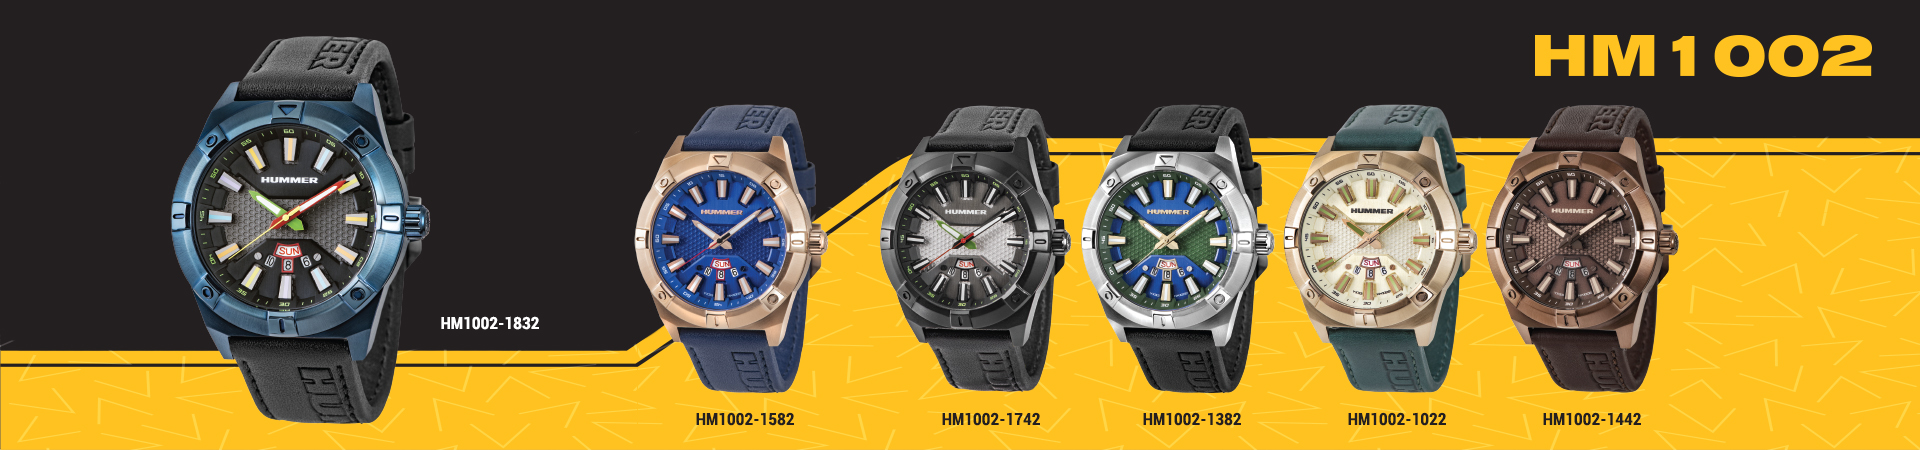 Hummer Watch Collection HM1002